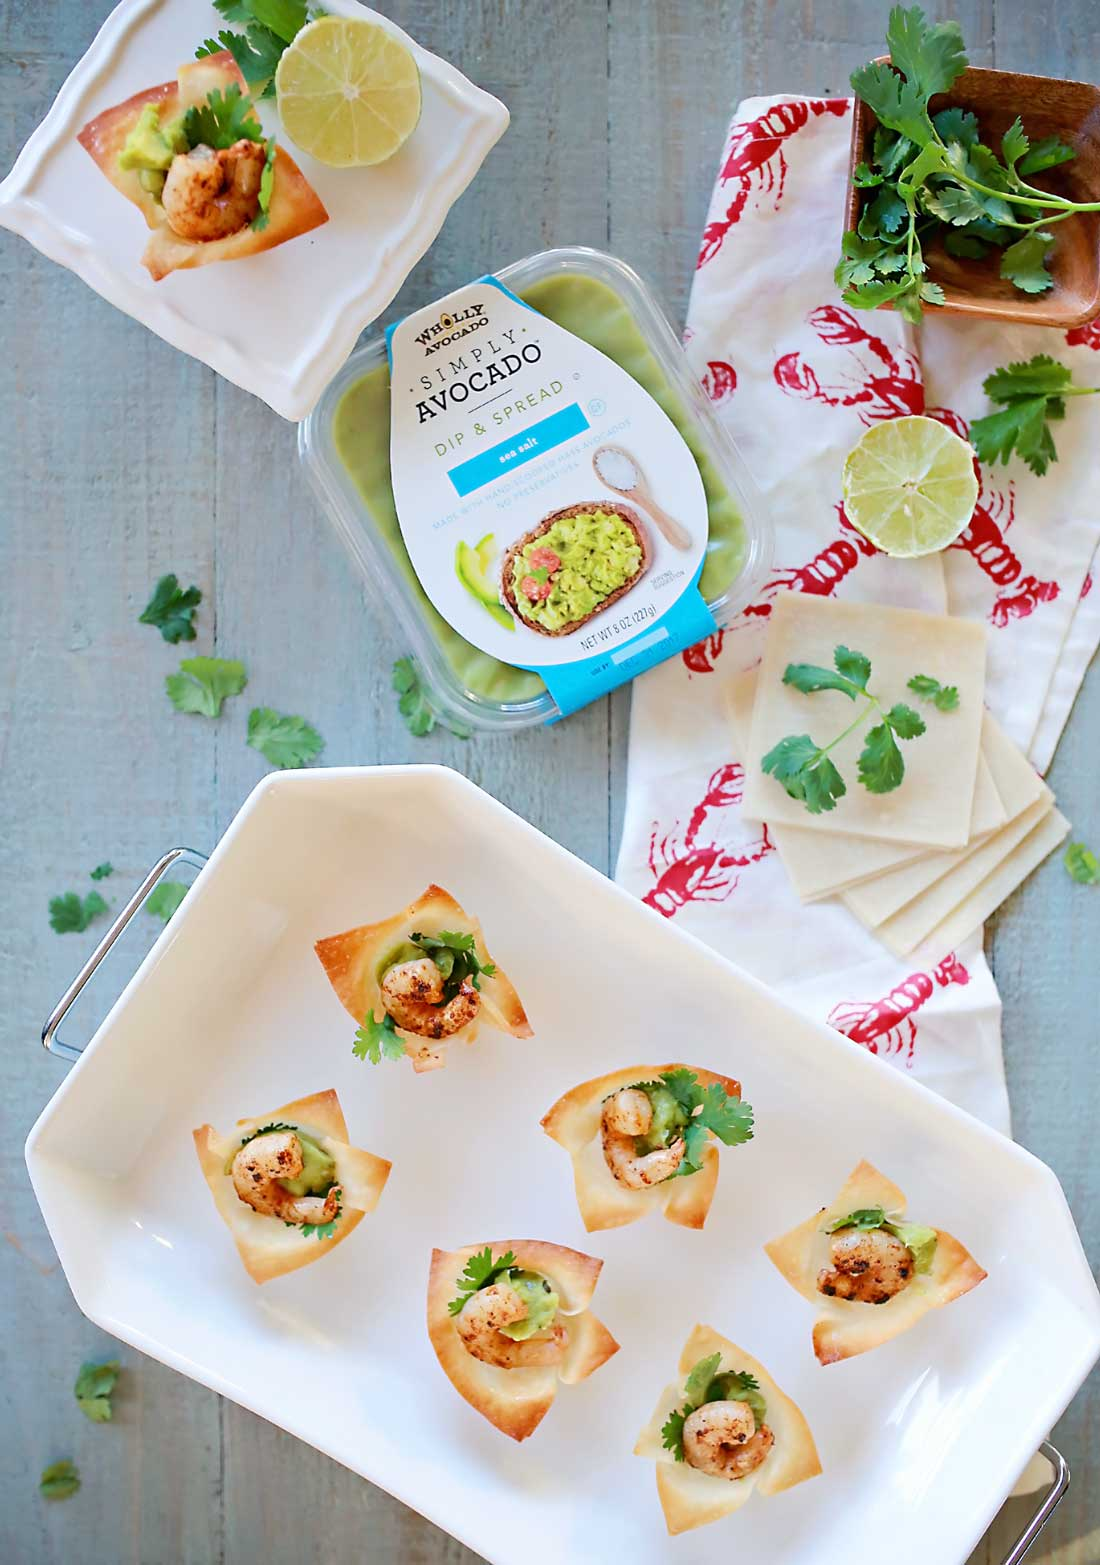 Easy and delicious Avocado and spicy shrimp bites!